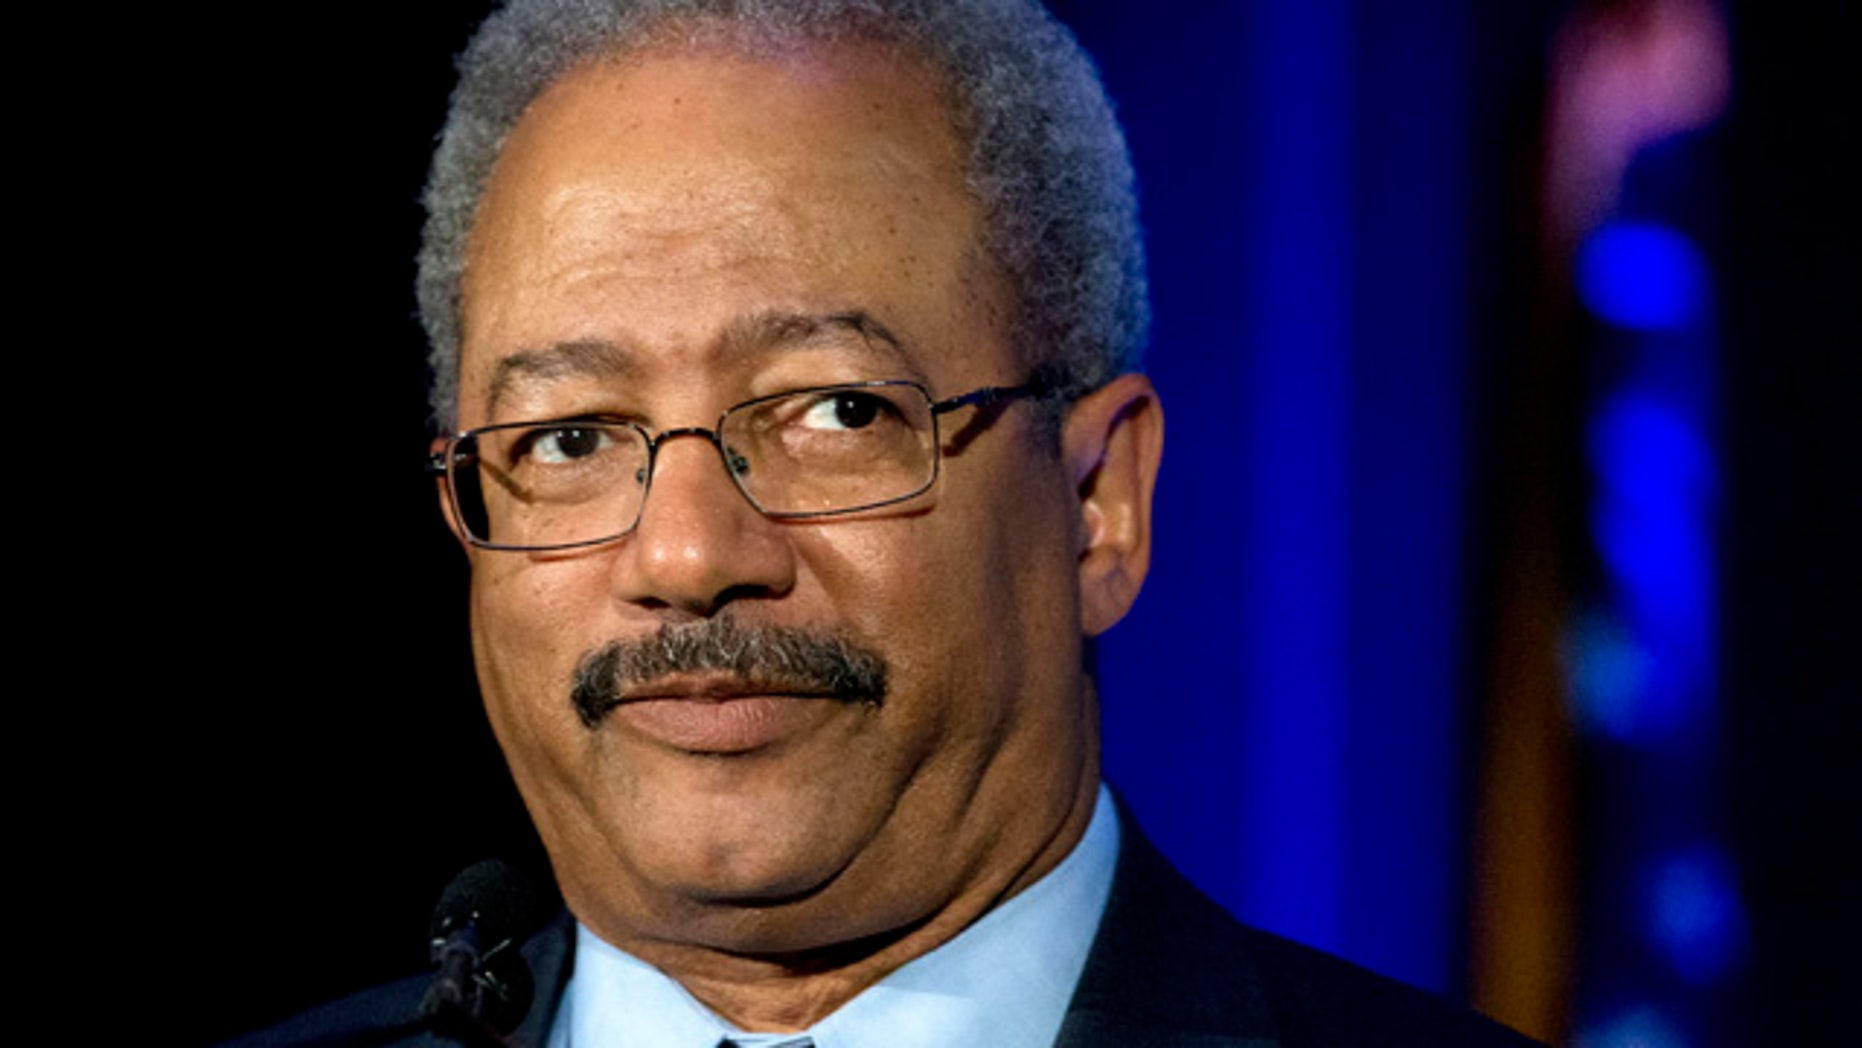 In this May 7, 2015 photo, Rep. Chaka Fattah, D-Pa., speaks during a My Brother's Keeper town hall at the School of the Future in Philadelphia. Fattah, an 11-term Democrat from Philadelphia, was indicted Wednesday, July 29, 2015, on charges that he misappropriated hundreds of thousands of dollars of federal, charitable and campaign funds. (AP Photo/Matt Rourke)